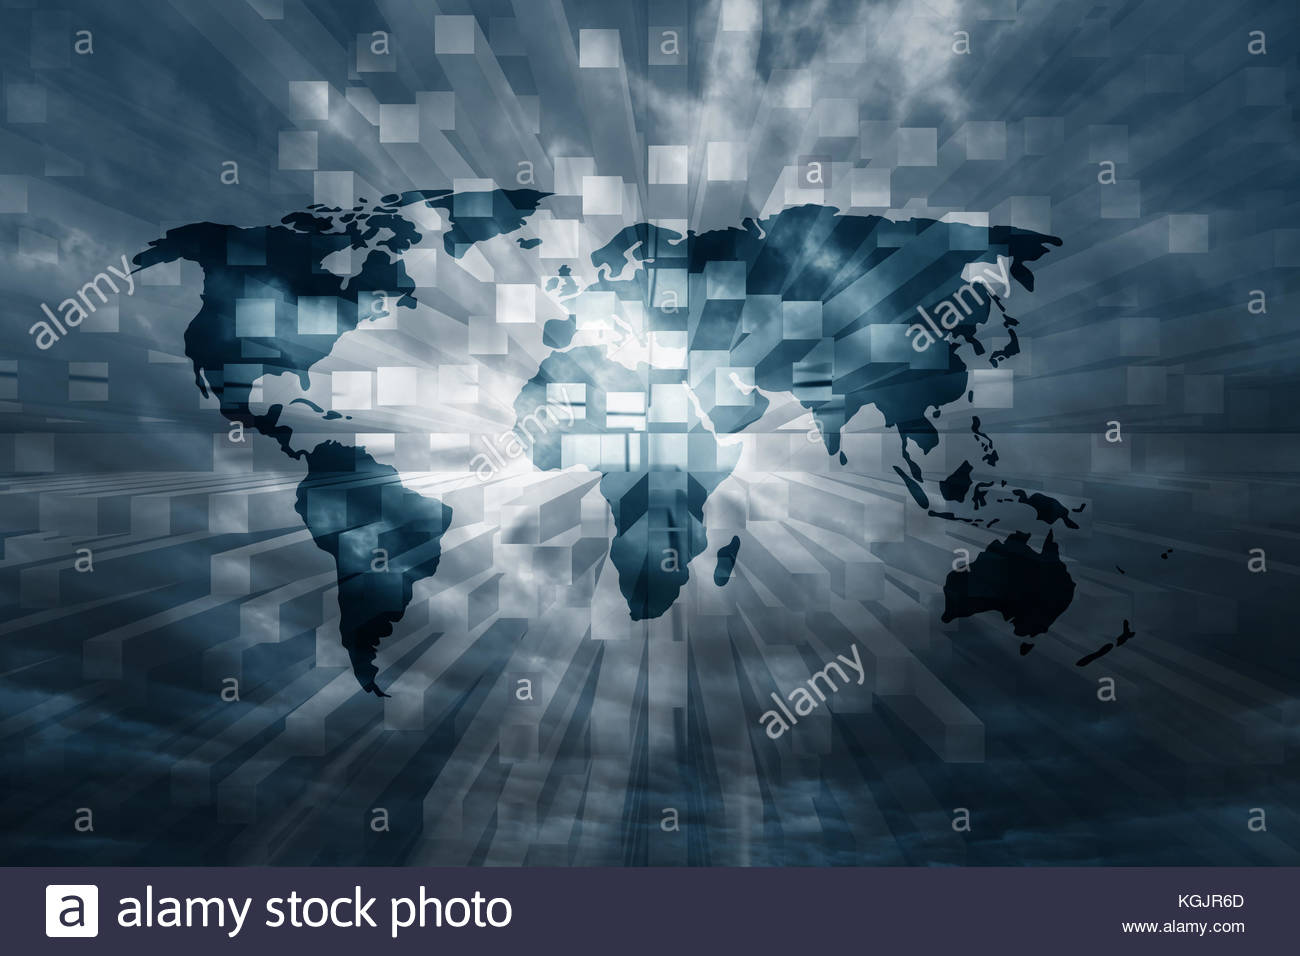 Dark blue tech background world stock photos dark blue tech dark blue abstract world map with binary numbers background stock image gumiabroncs Gallery